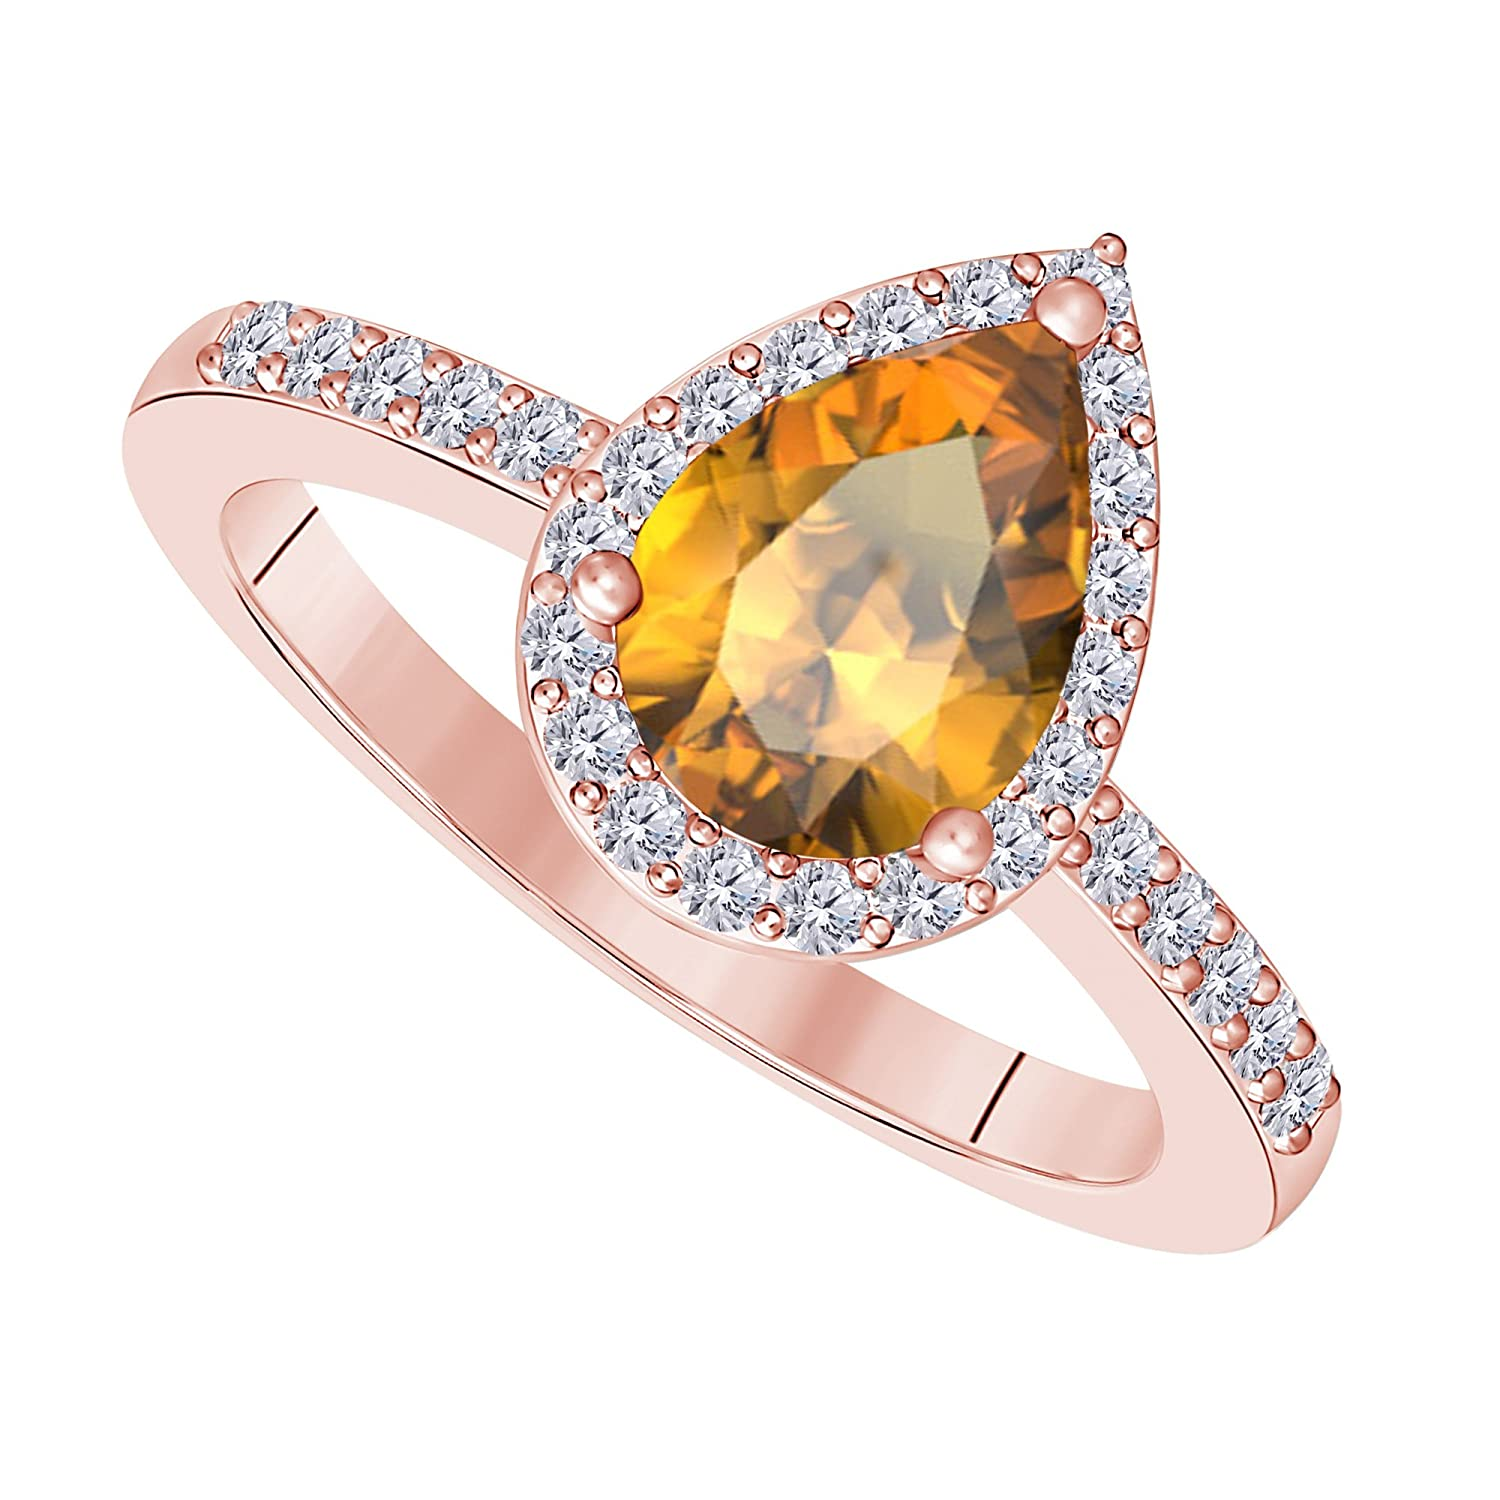 3 Carat Pear Shape Lab Created Black Sapphire /& Cubic Zirconia Halo Style 14K Rose Gold Over Alloy Wedding Engagement Ring Womens Jewelry